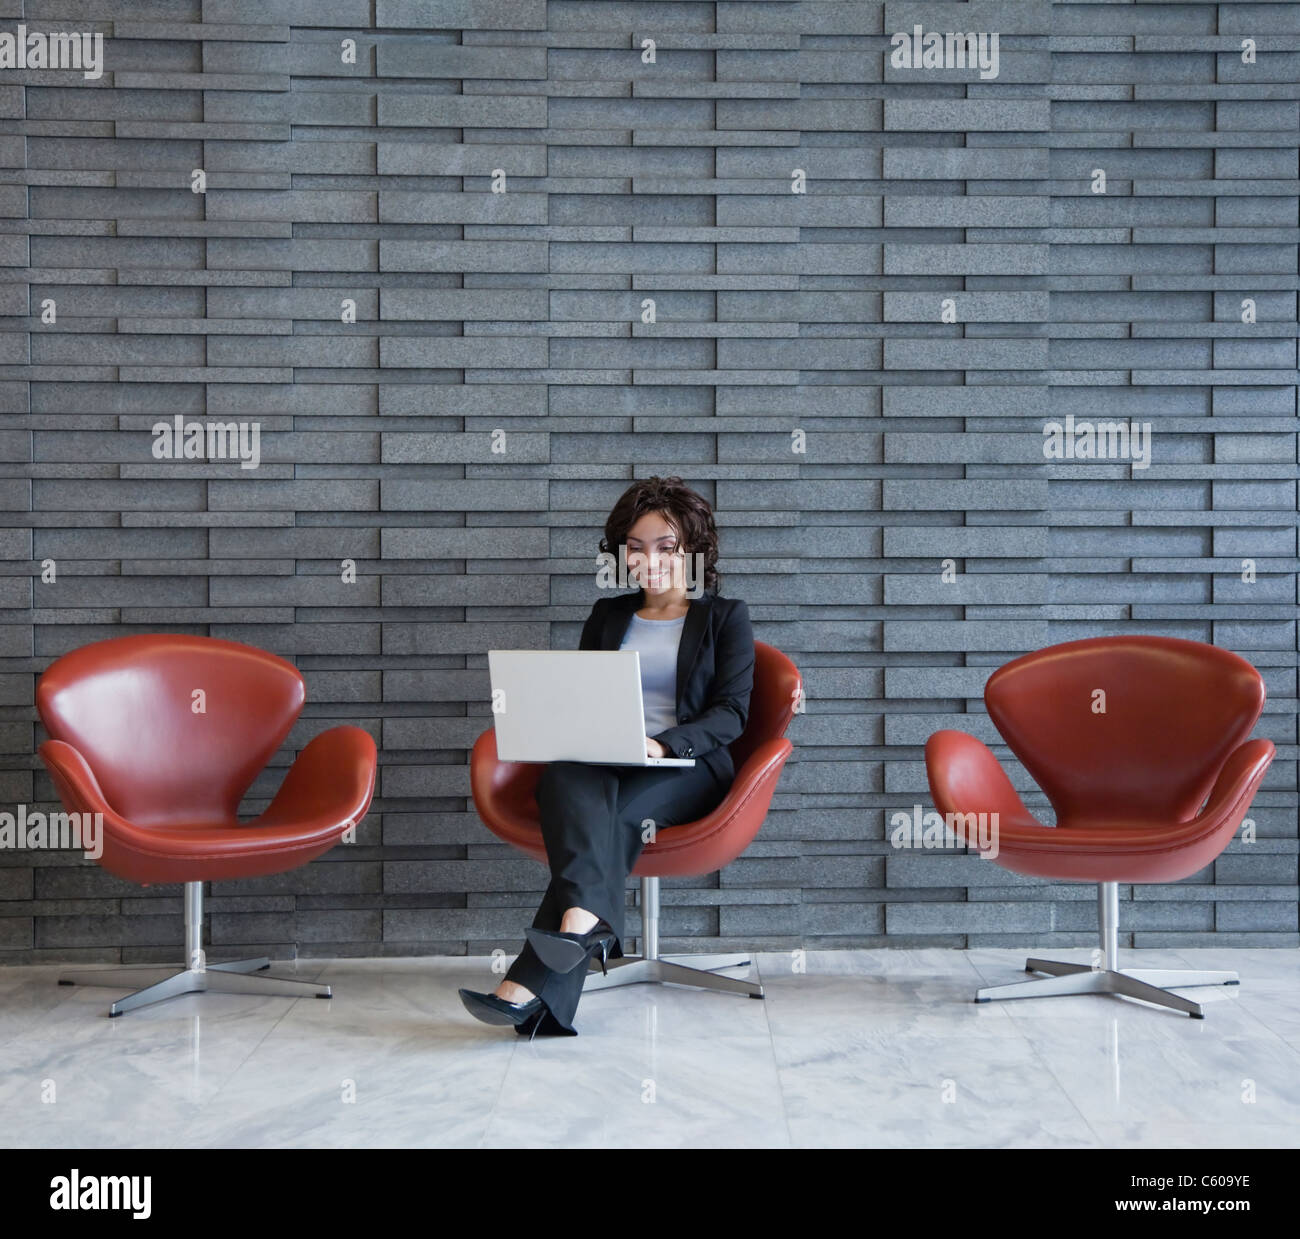 USA, New York, New York City, smiling young woman using laptop in hotel lobby - Stock Image